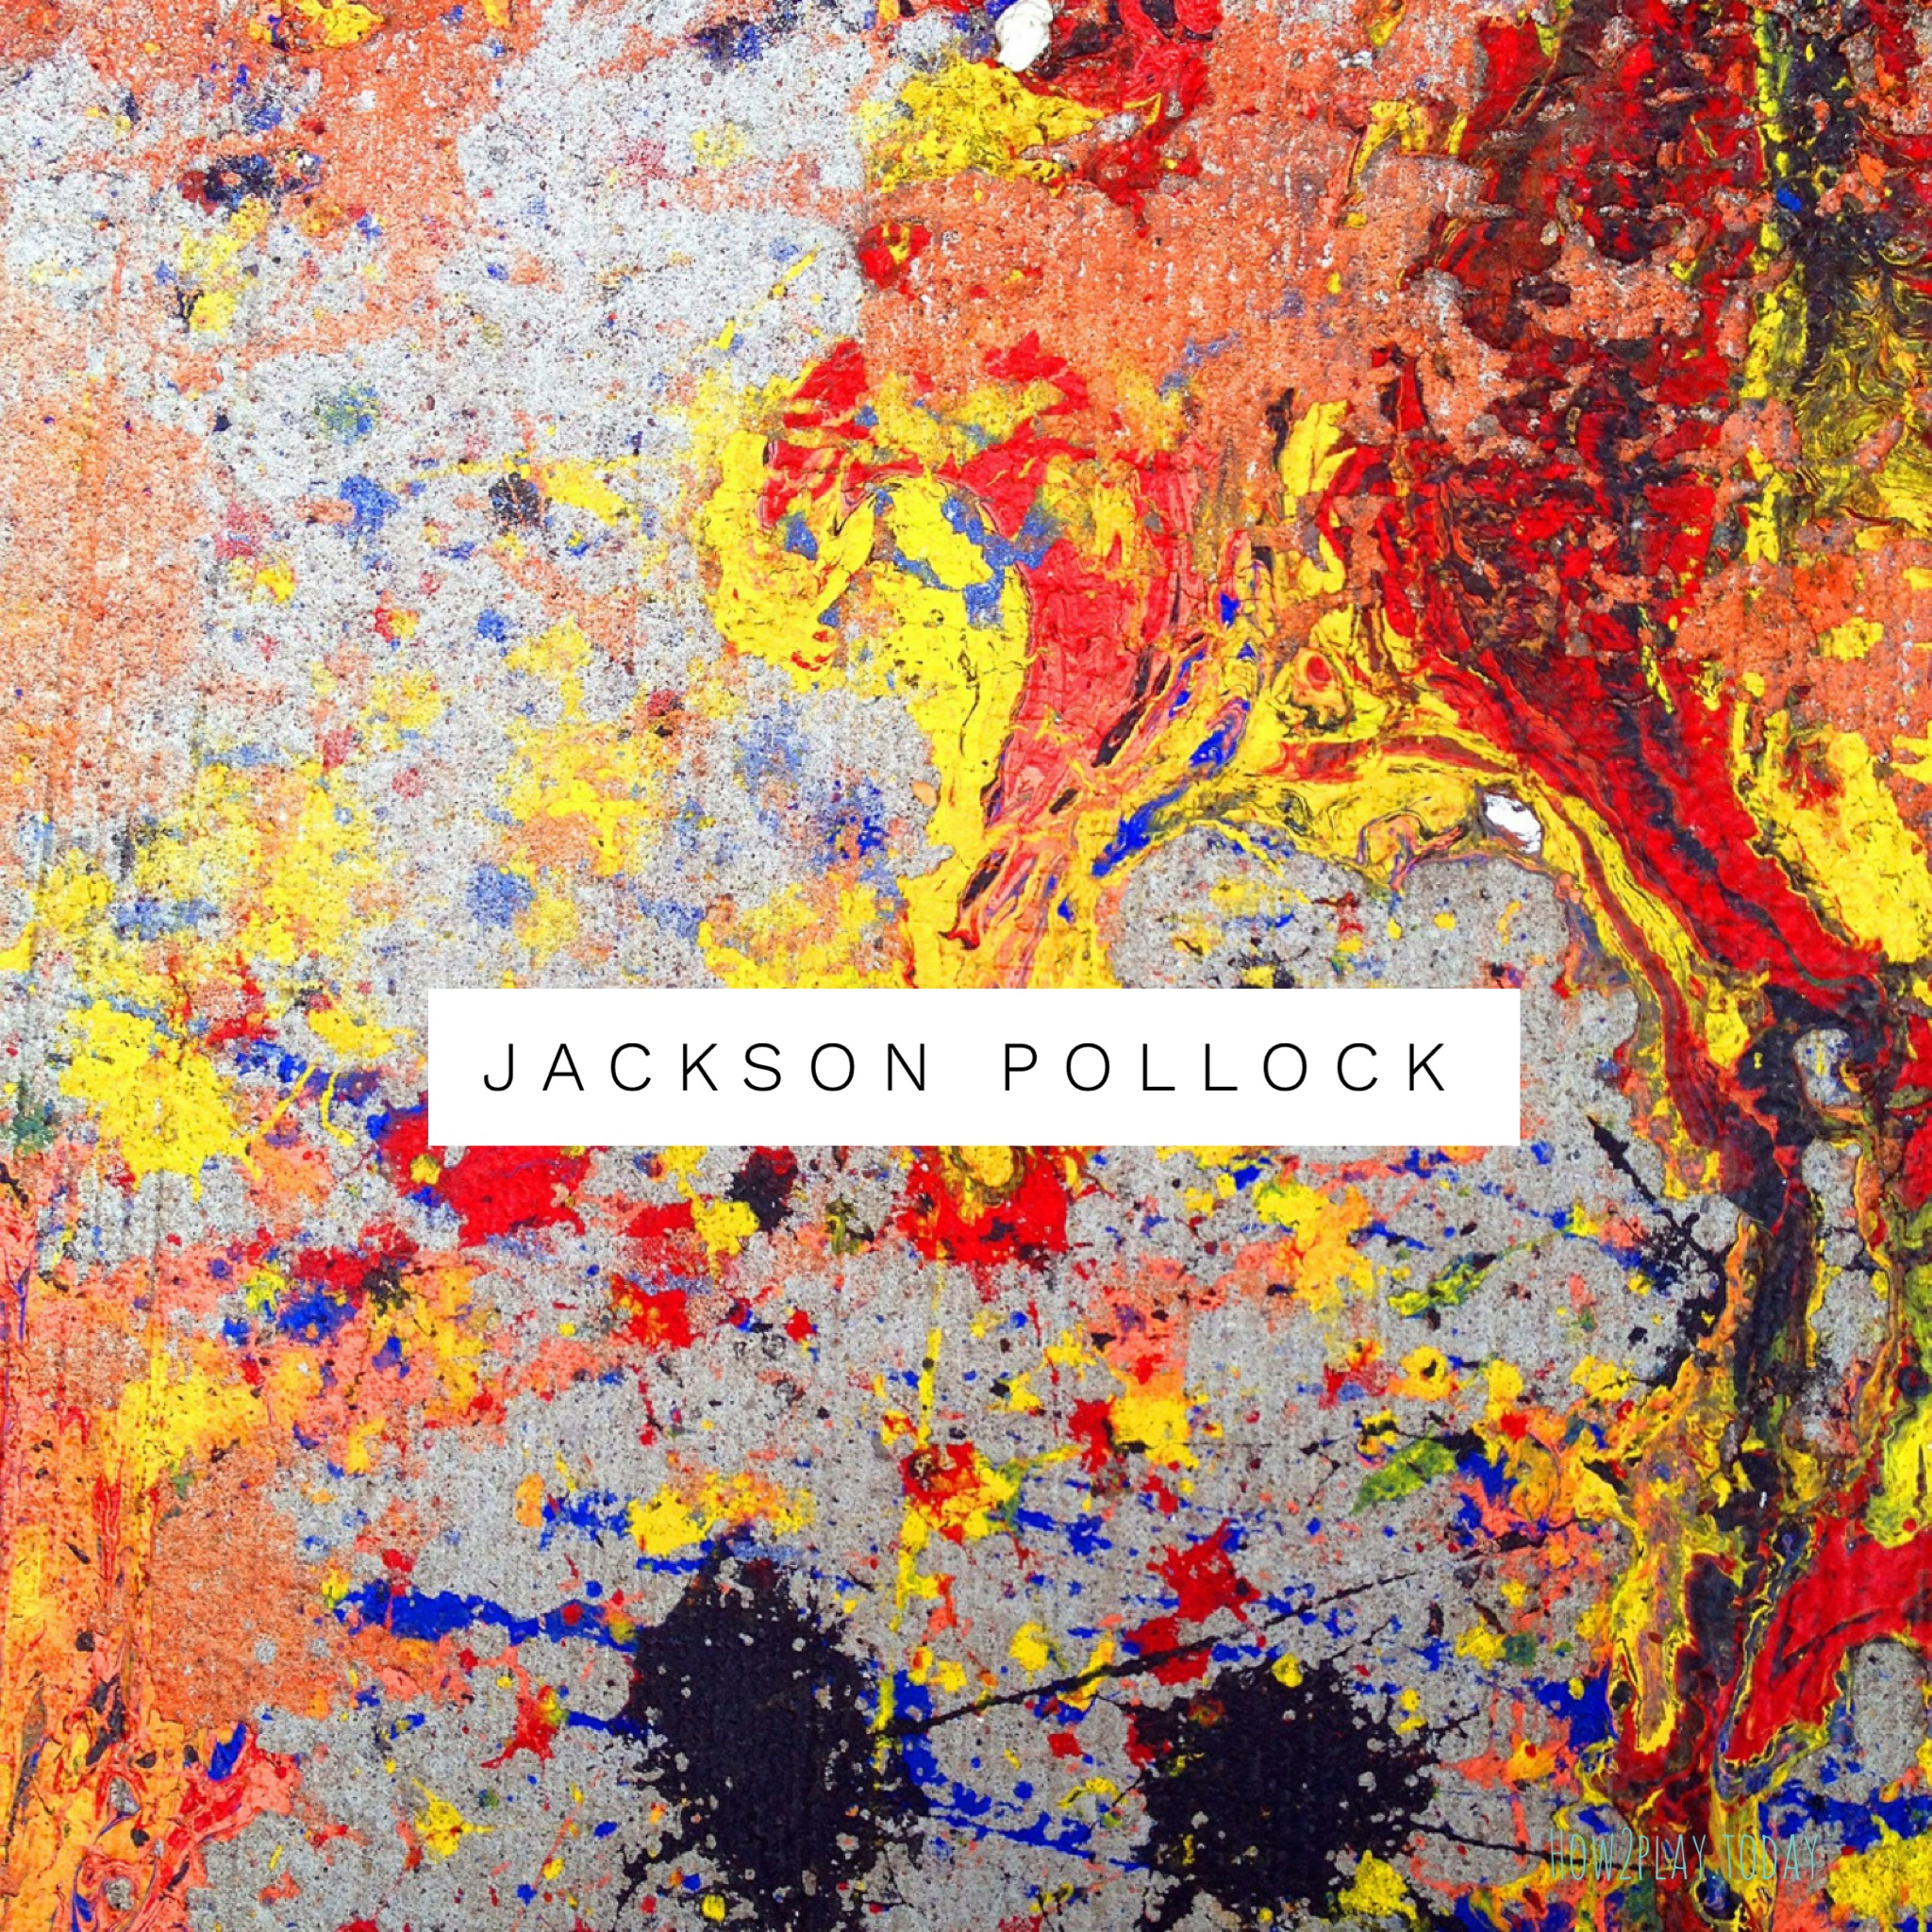 Jackson Pollock inspired art learning / lesson plans for kids. Come explore Splatter Painting for preschool and elementary age children. Children will learn Elements of Art, Principles of Design while having the freedom of creative expression.